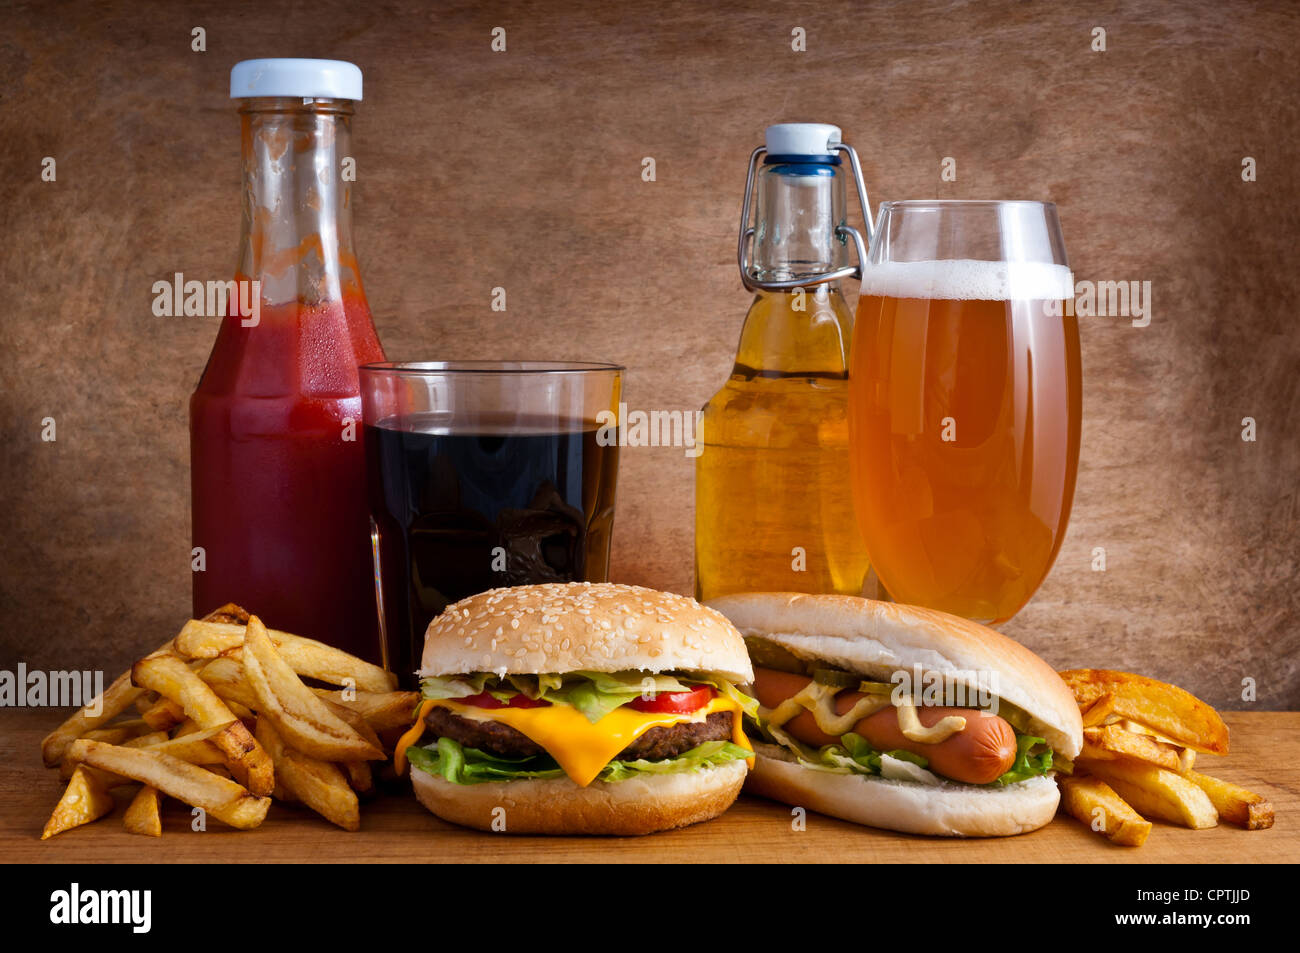 Junk food with burger, hotdog, french fries, cola, ketchup and beer on a wooden background - Stock Image